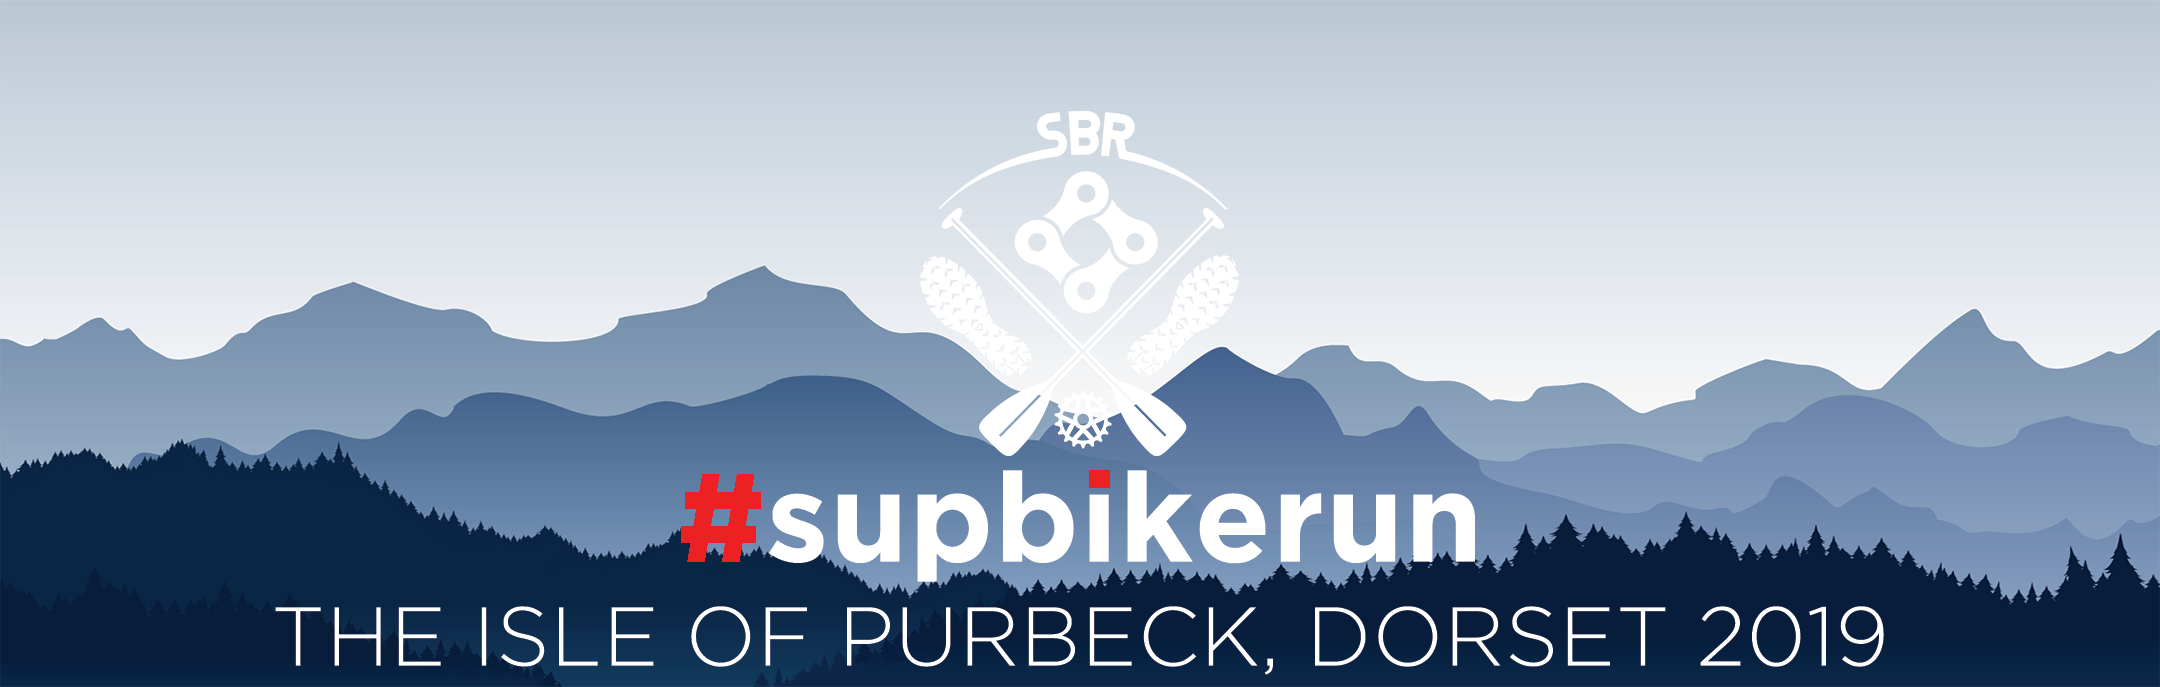 #supbikerun-isle-of-purbeck-2019